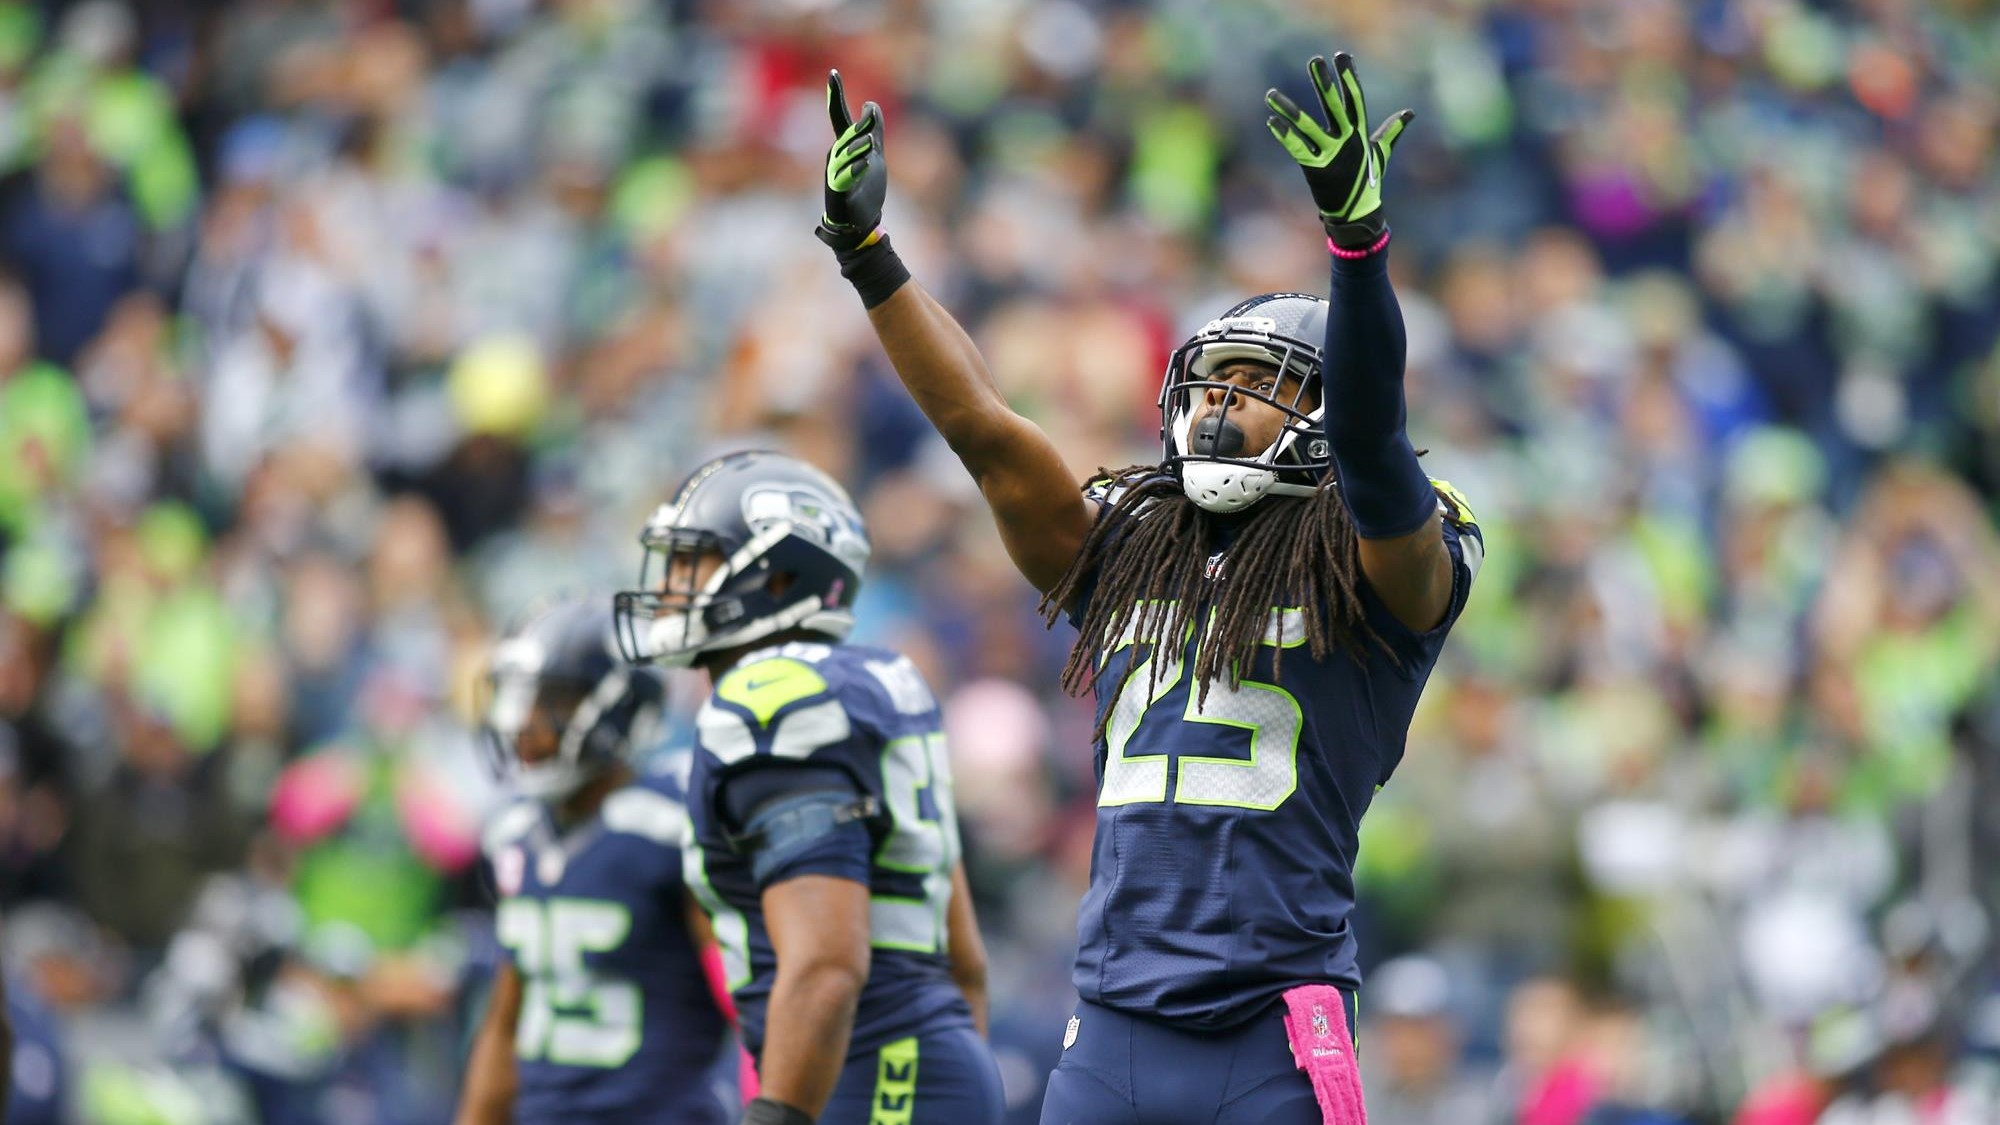 Sherman_atl_101616_gettyimages_615054848